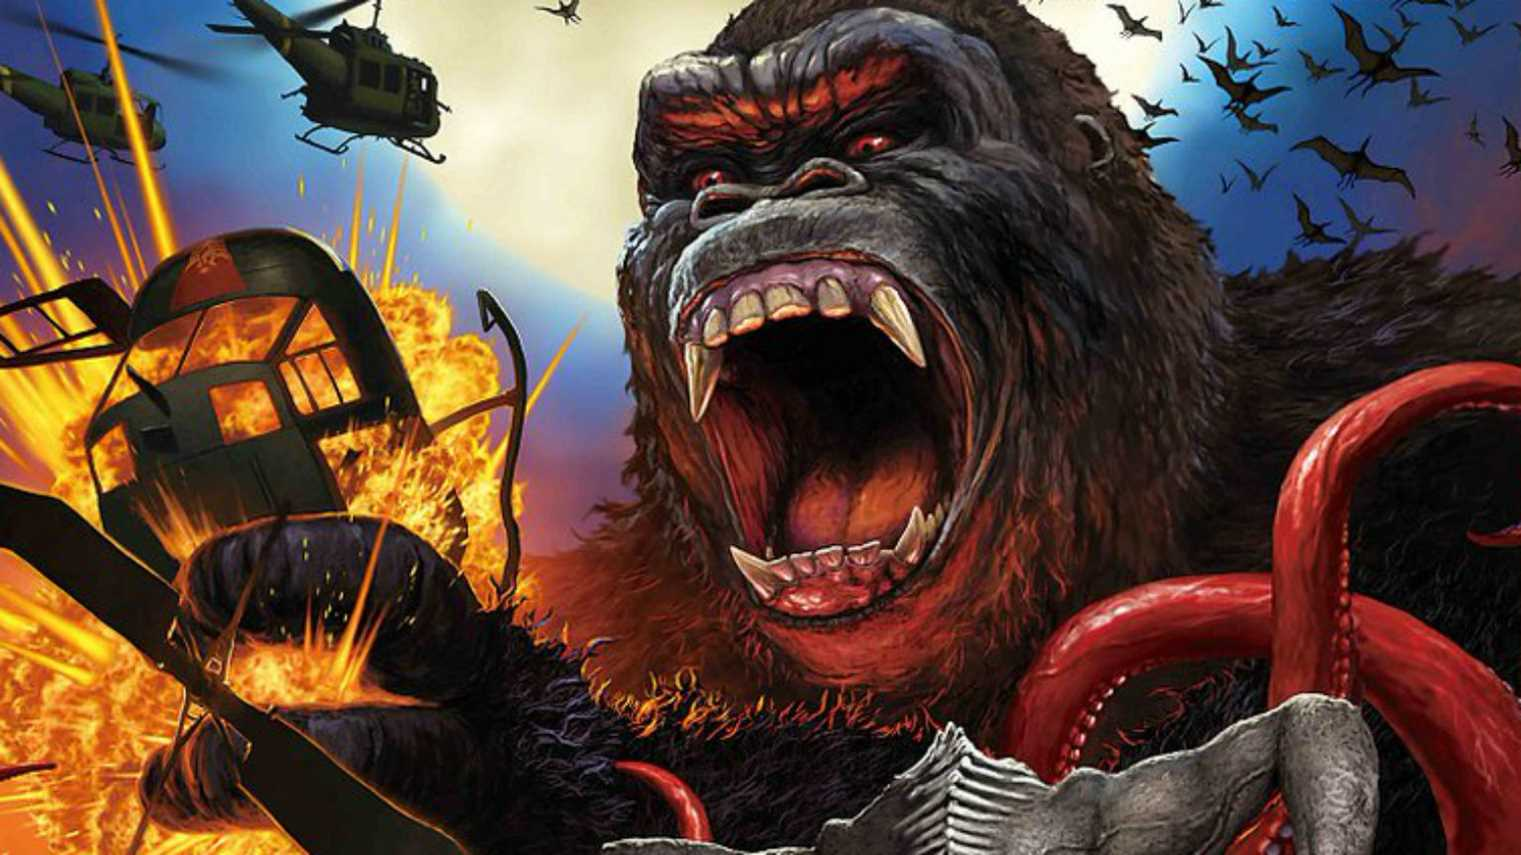 Have you seen this crazy Japanese poster for Kong: Skull Island?